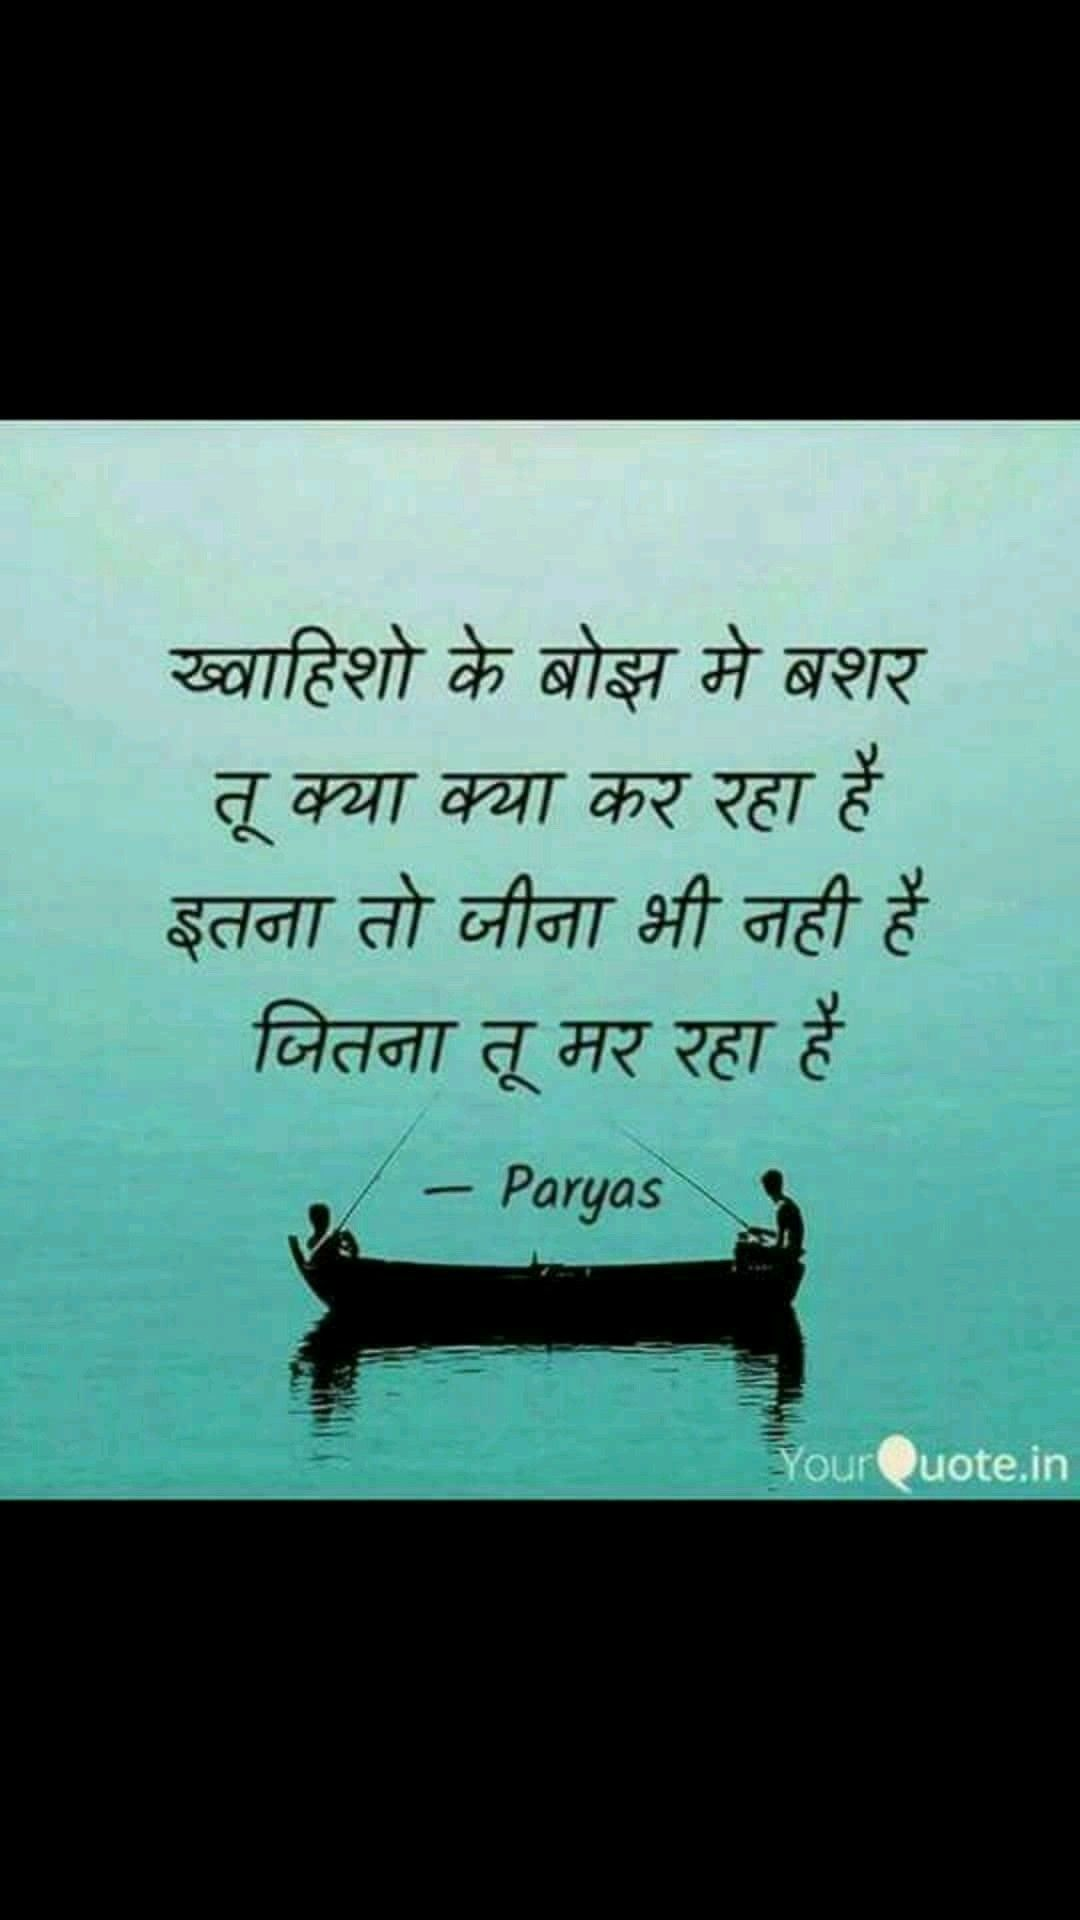 Pin By Pratap Thakkar On Heart S Hindi Quotes Quotes Heart